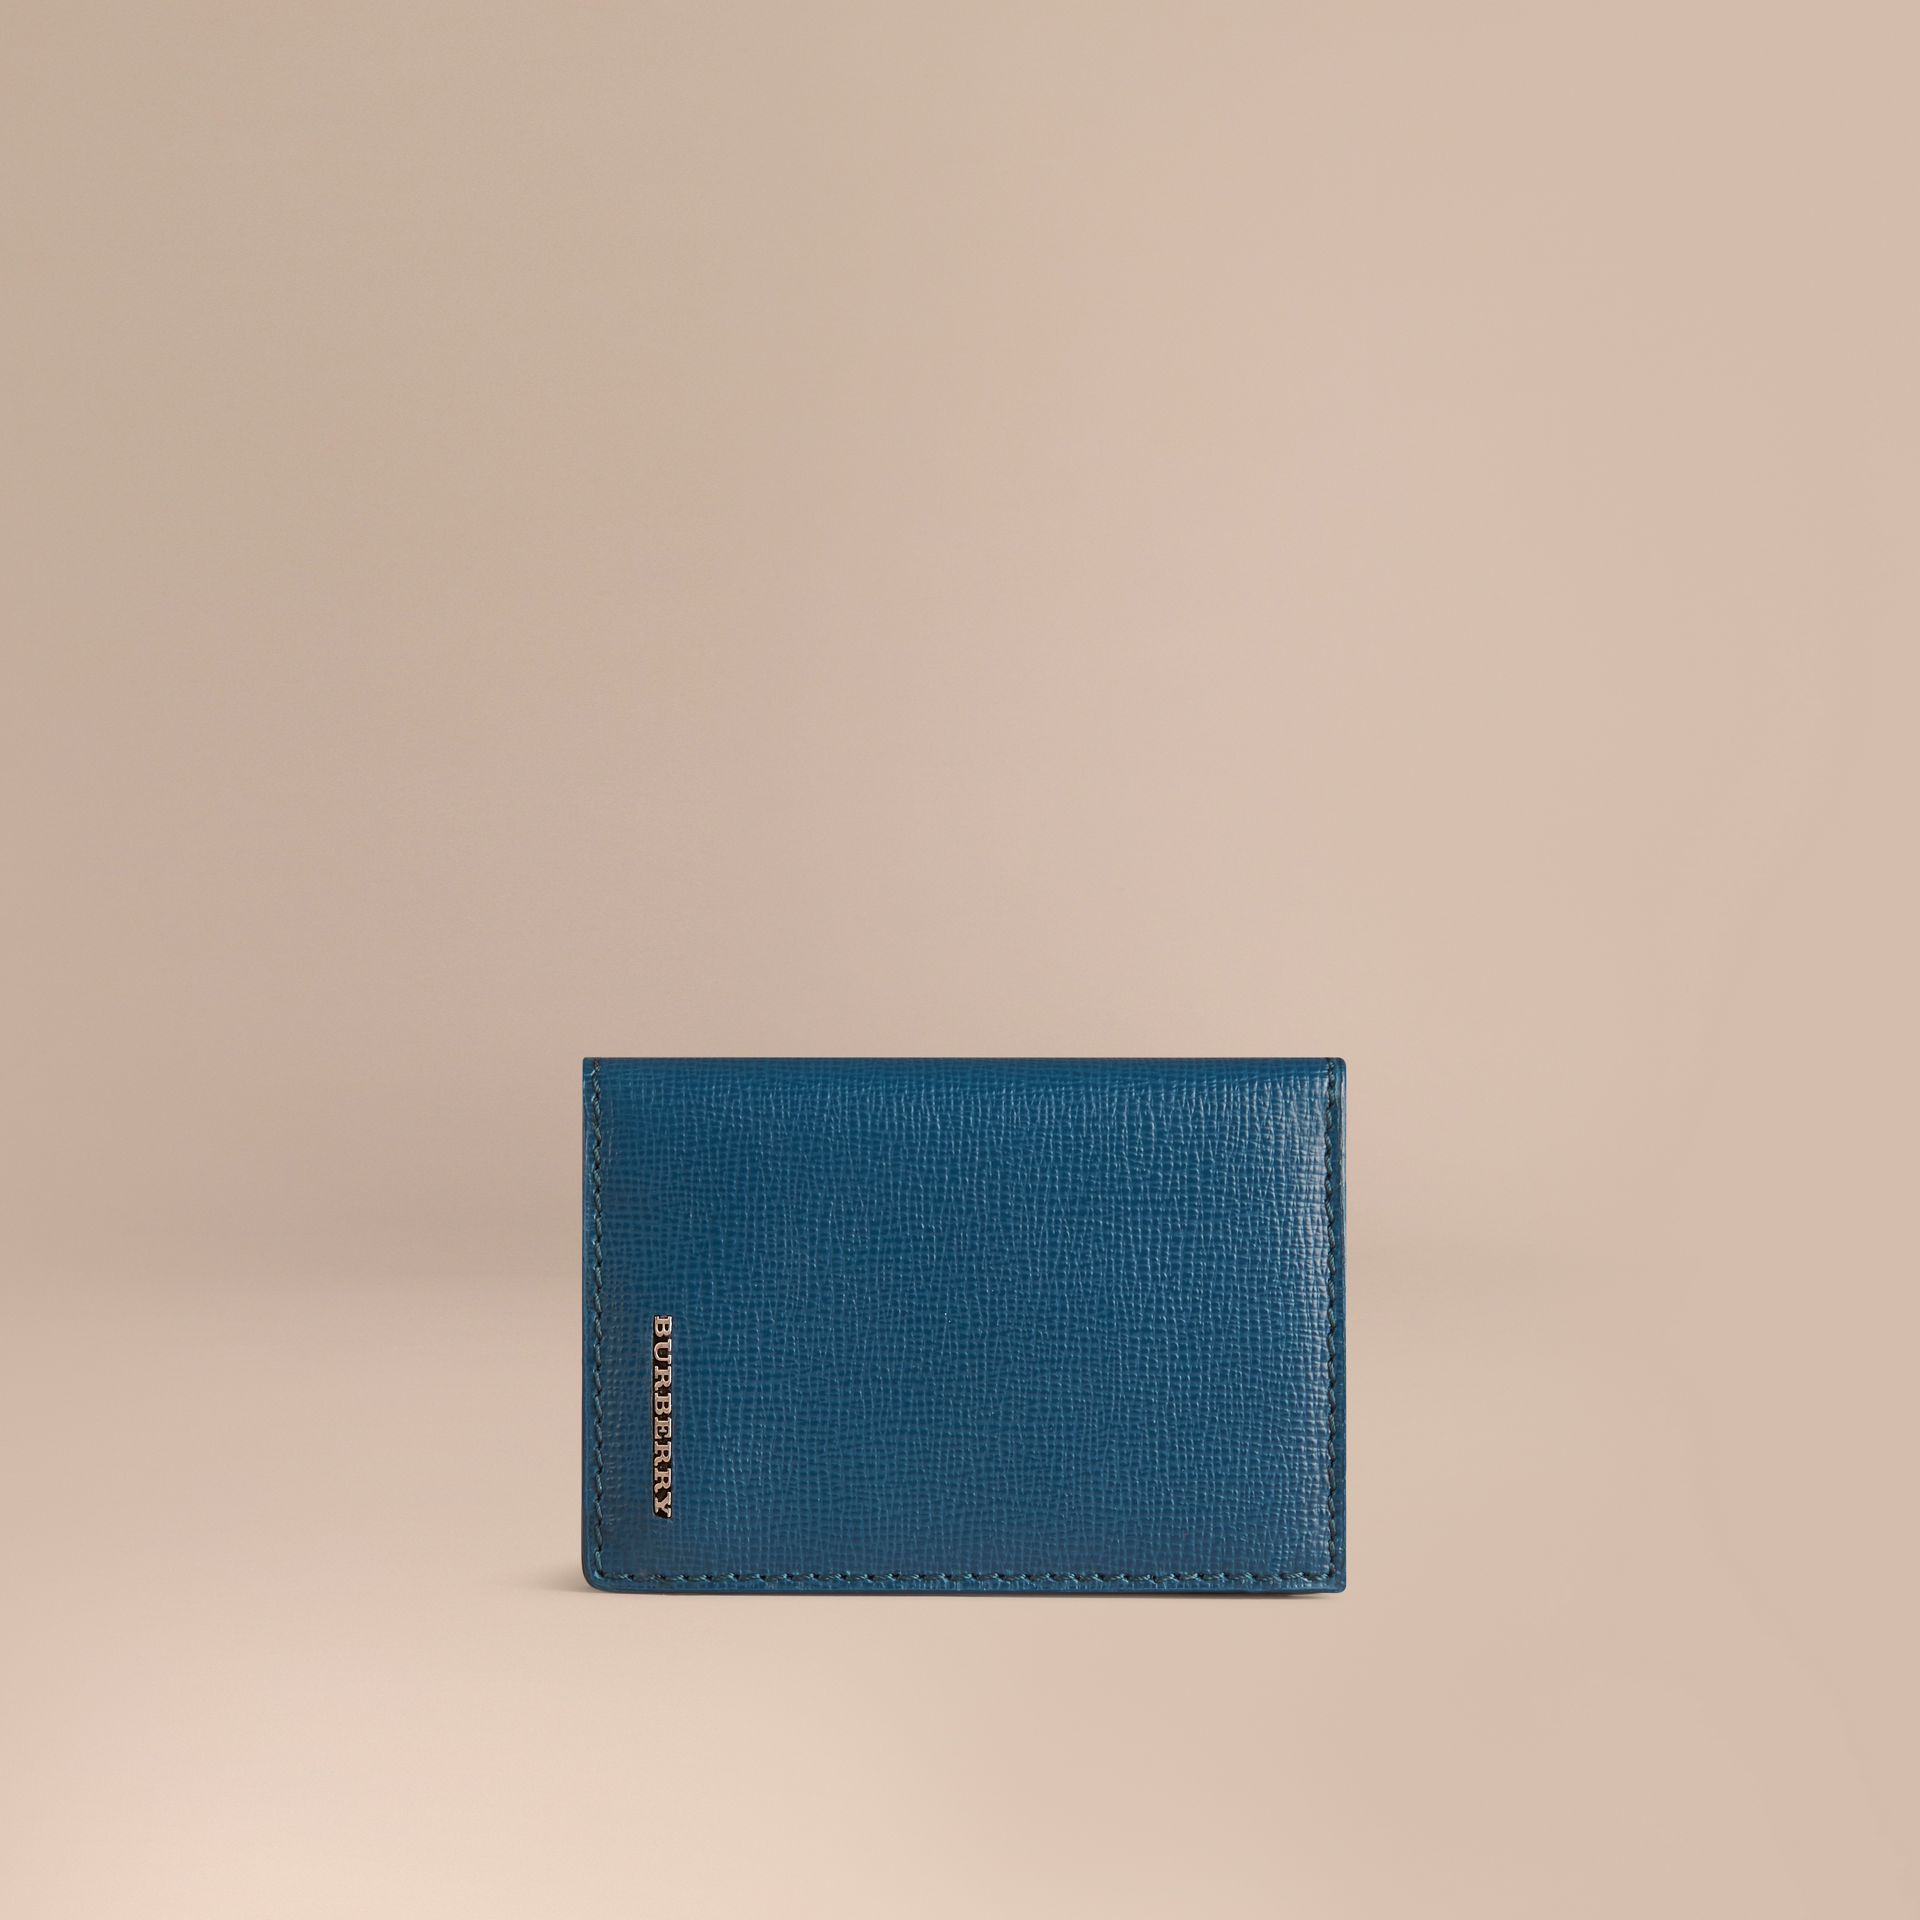 Mineral blue London Leather Folding Card Case Mineral Blue - gallery image 1